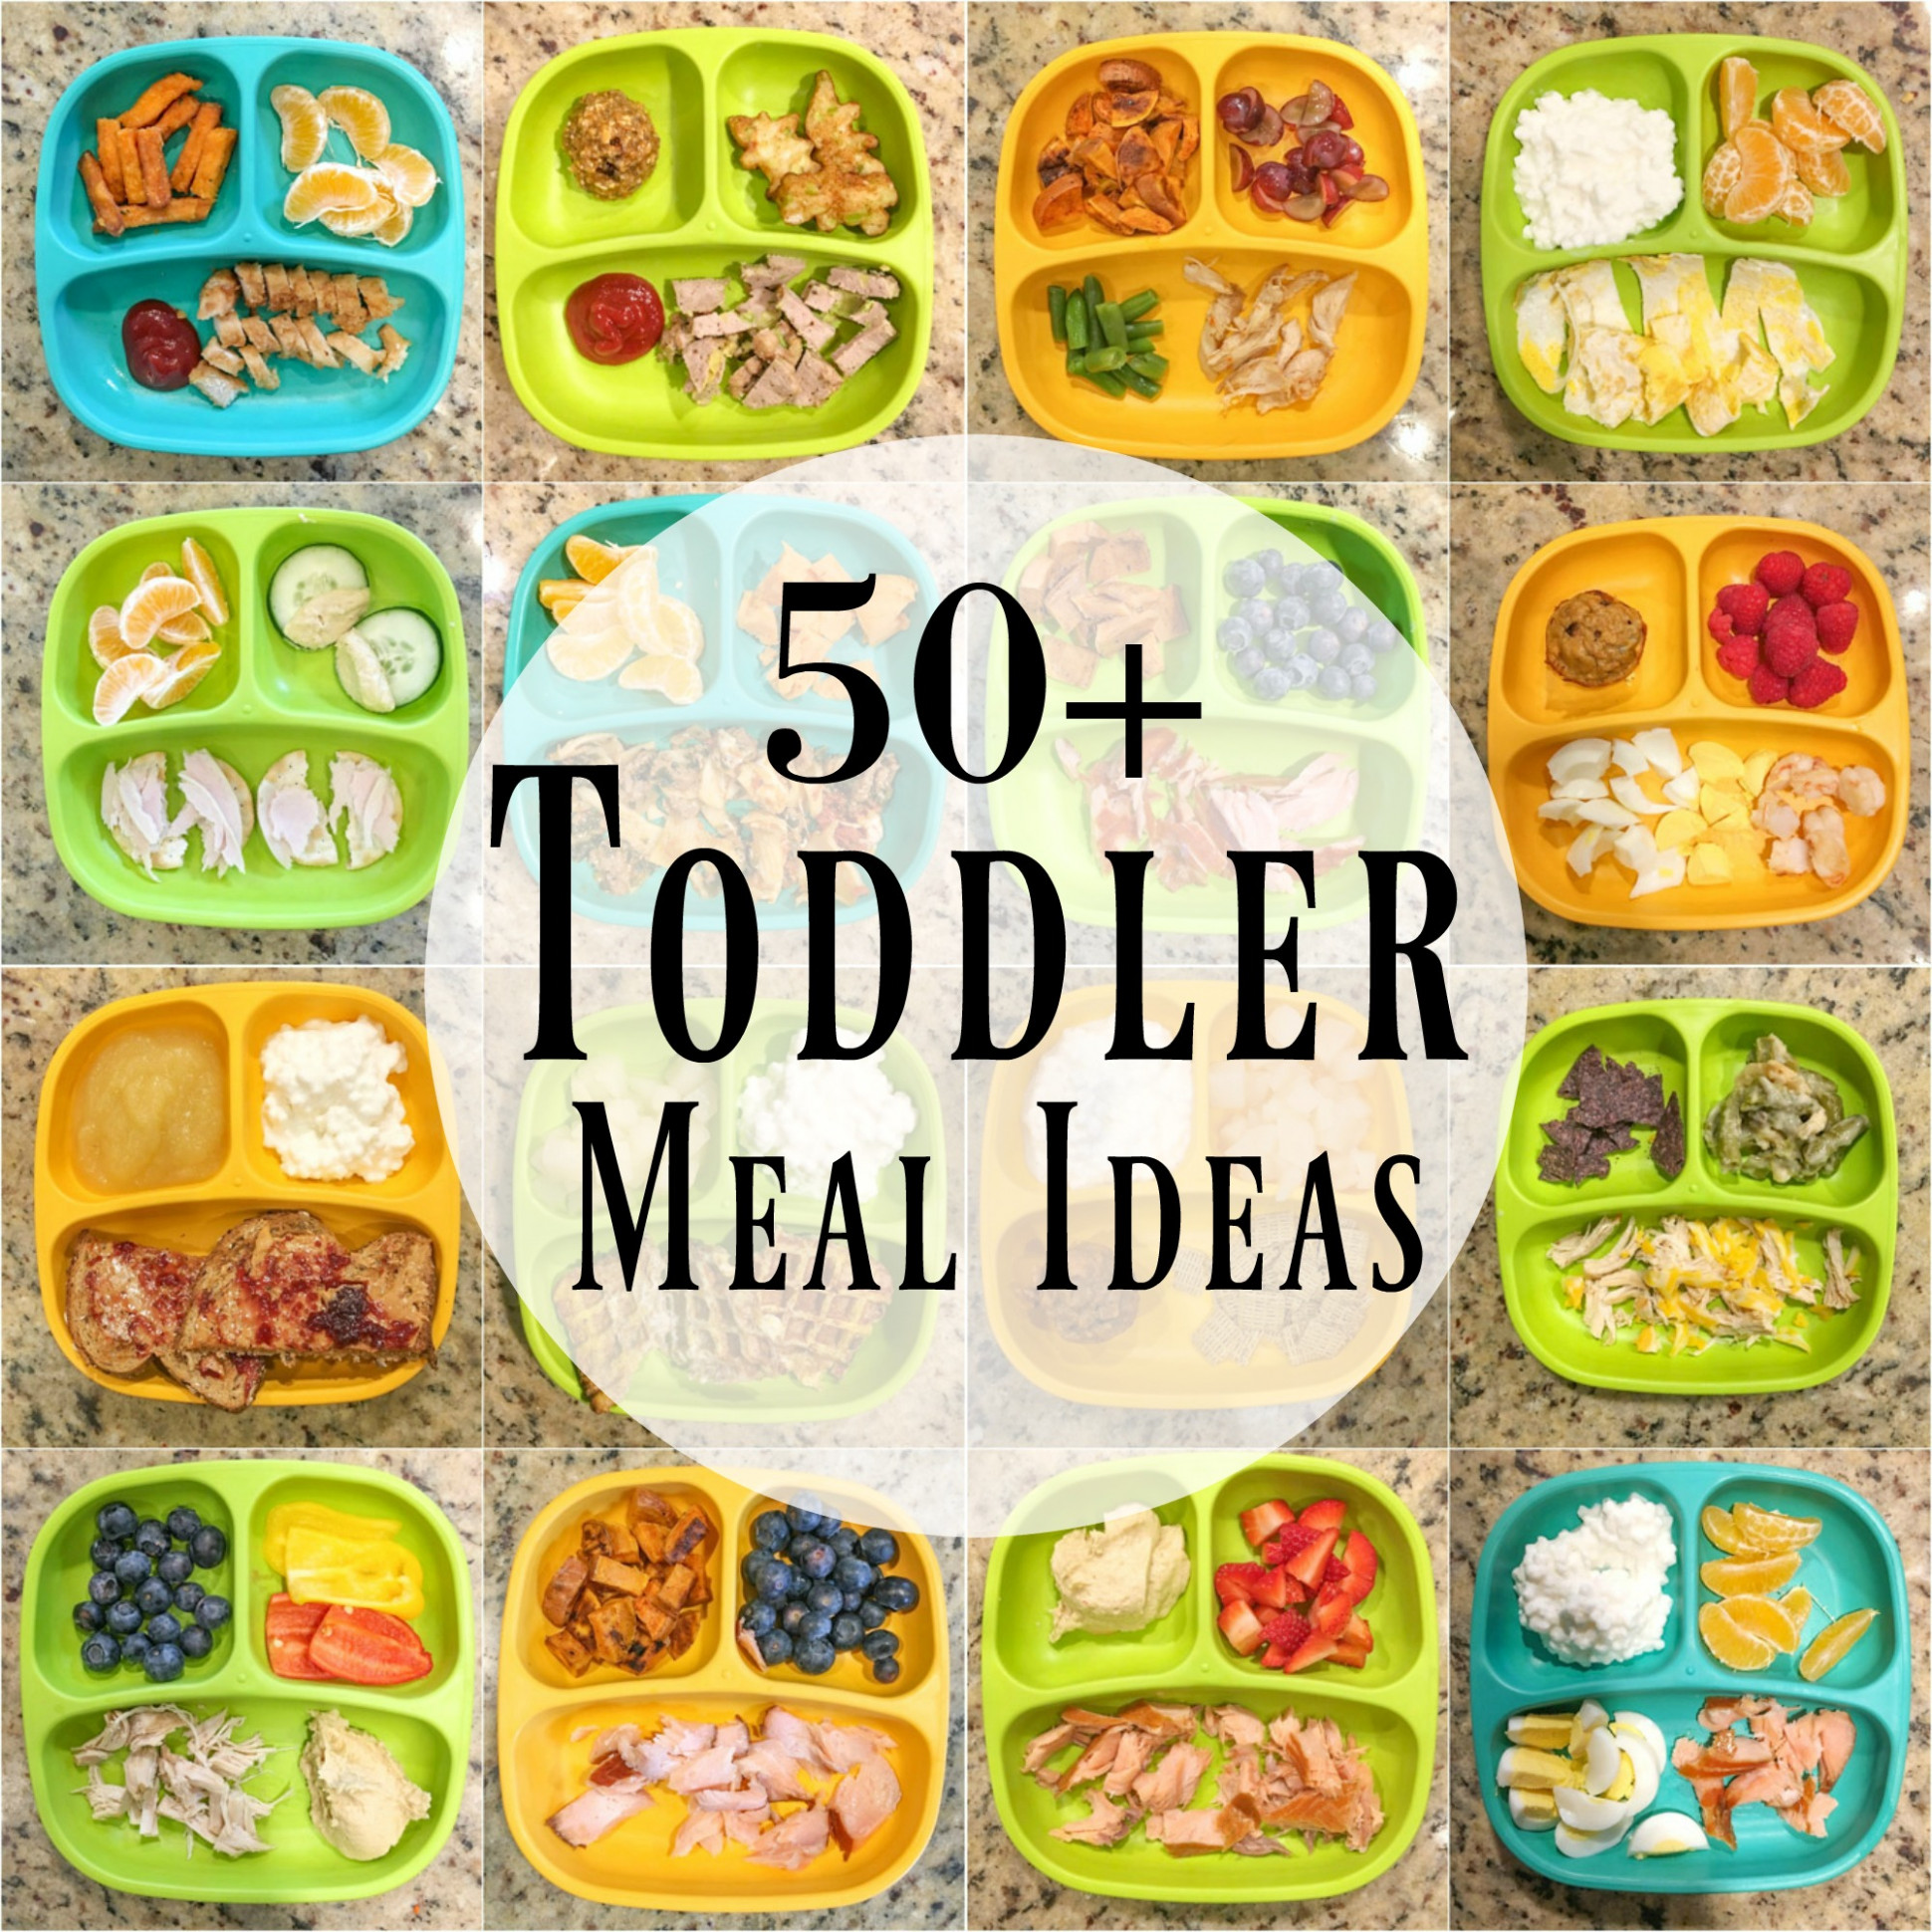 15 Healthy Toddler Meal Ideas | The Lean Green Bean - chicken recipes for toddlers